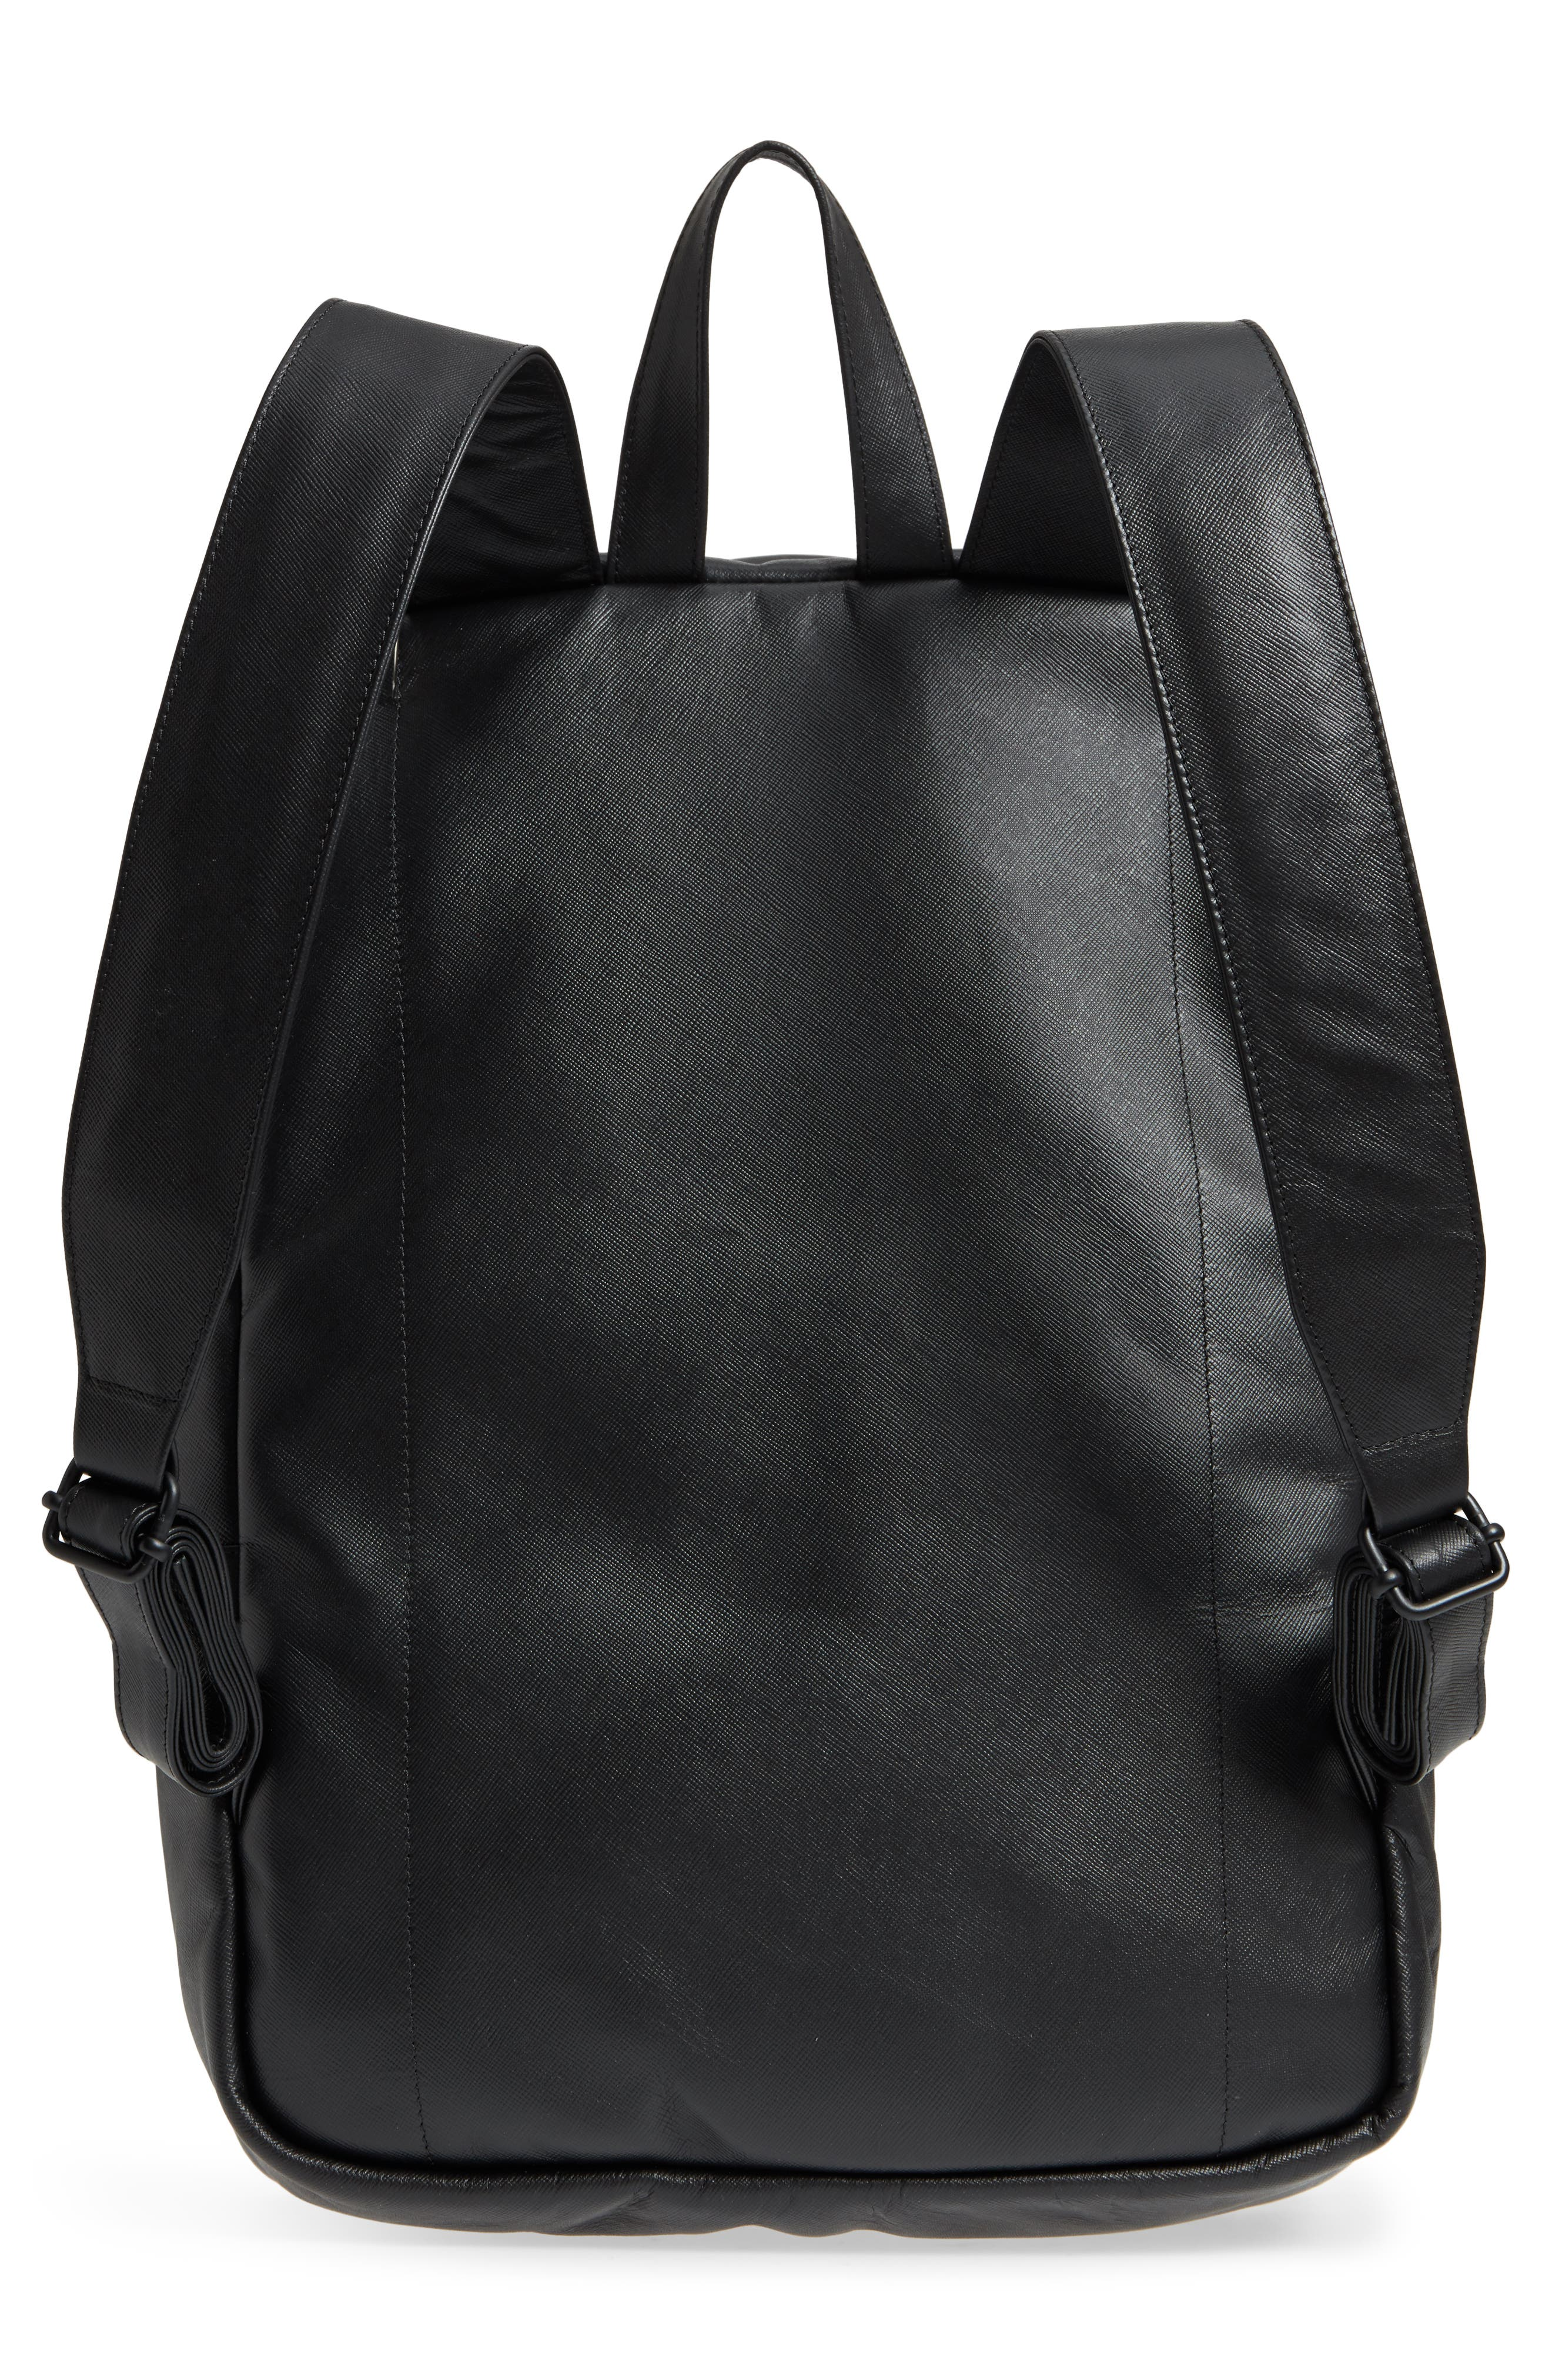 Saffiano Leather Backpack,                             Alternate thumbnail 3, color,                             001